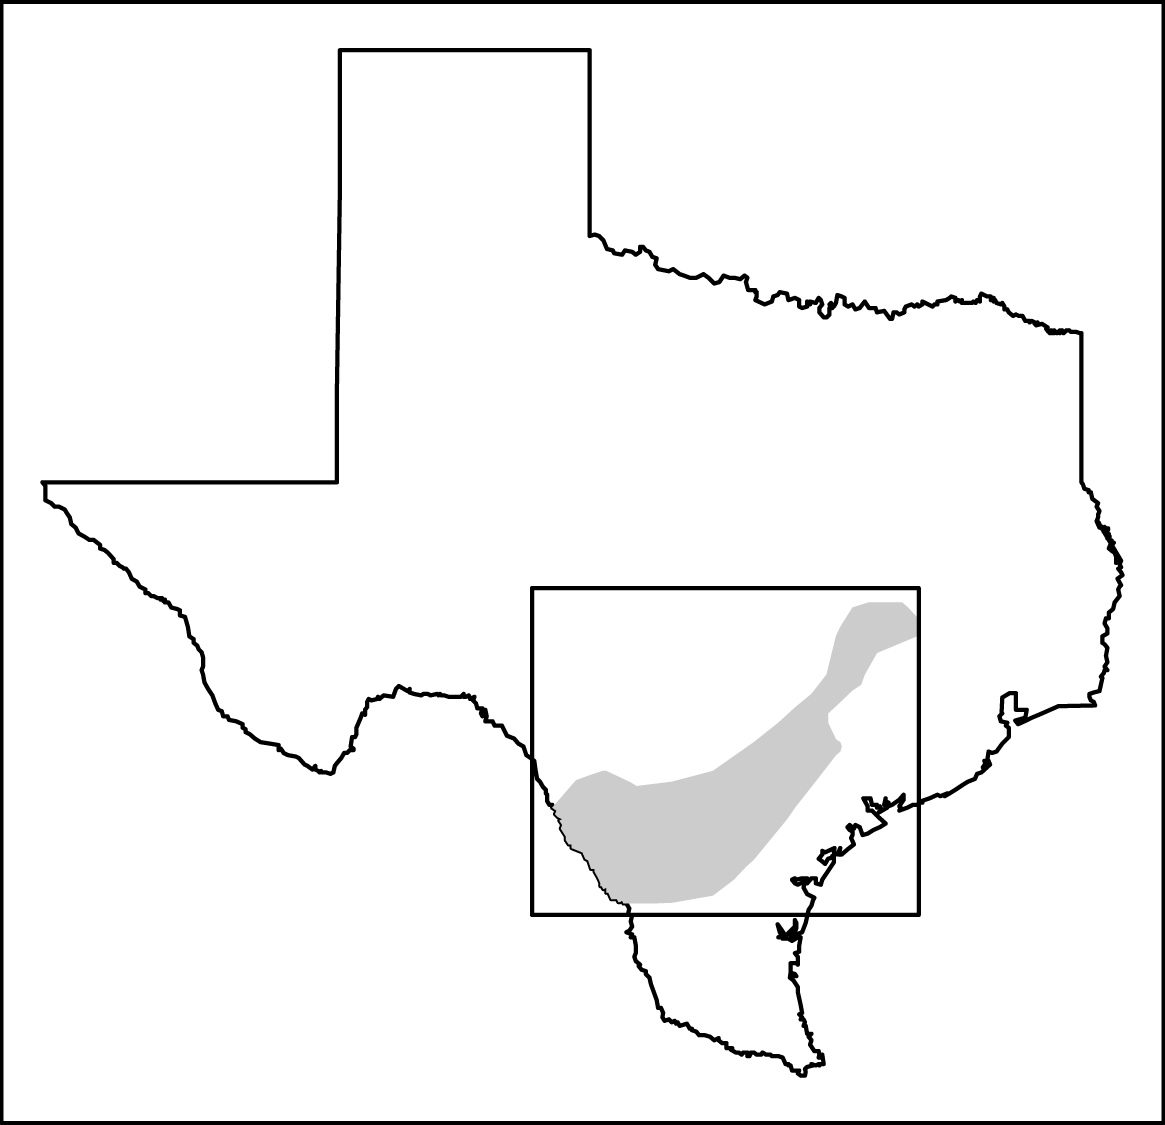 1165x1125 Small Earthquakes in the Eagle Ford Region of Texas Correlate with